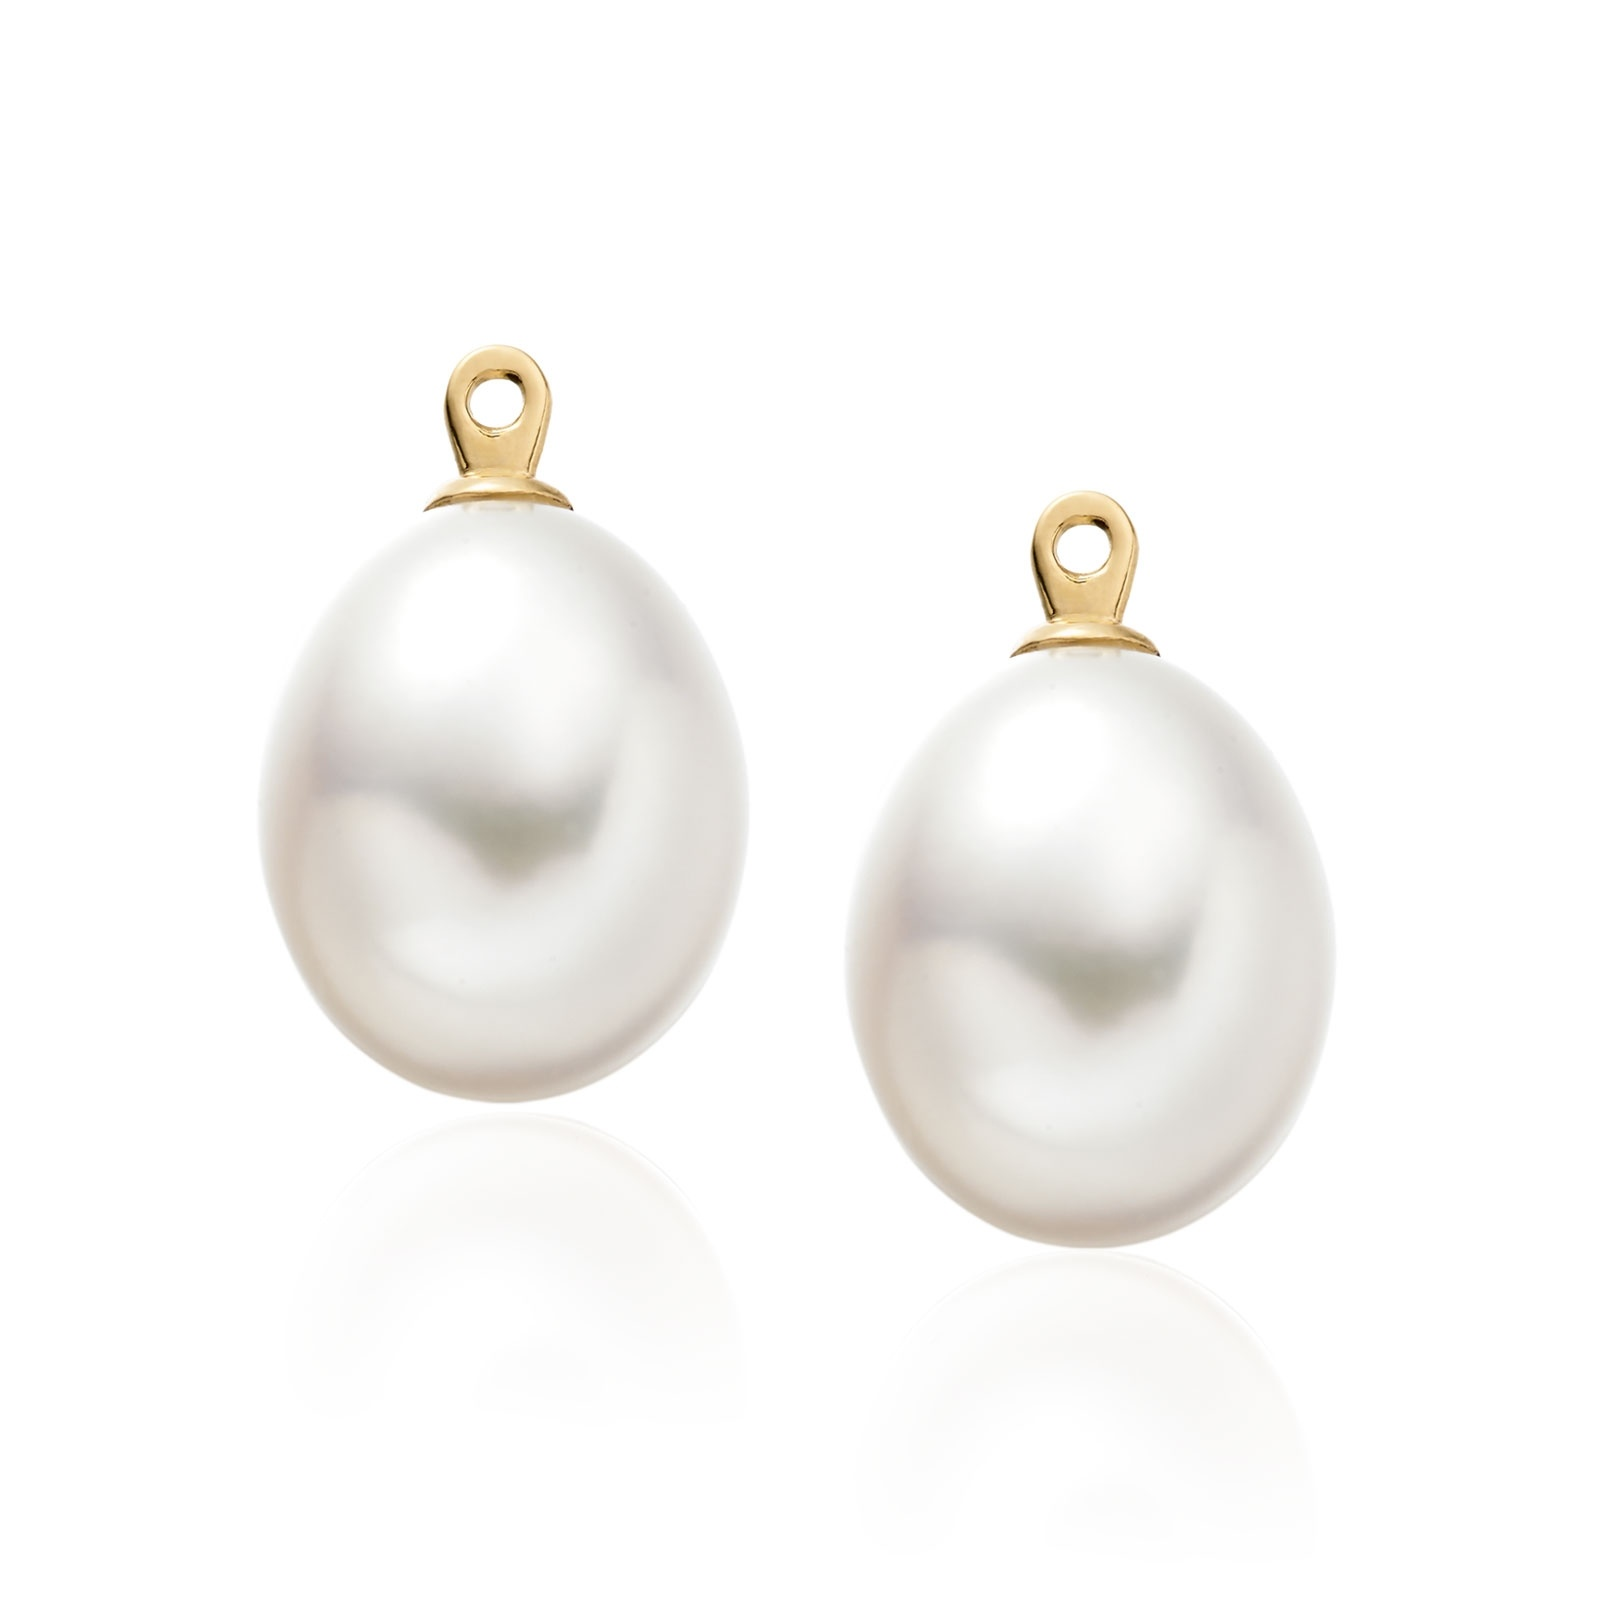 Enchanted Diamond Studs in Yellow Gold with Freshwater Pearls-FEWDYG0479-1